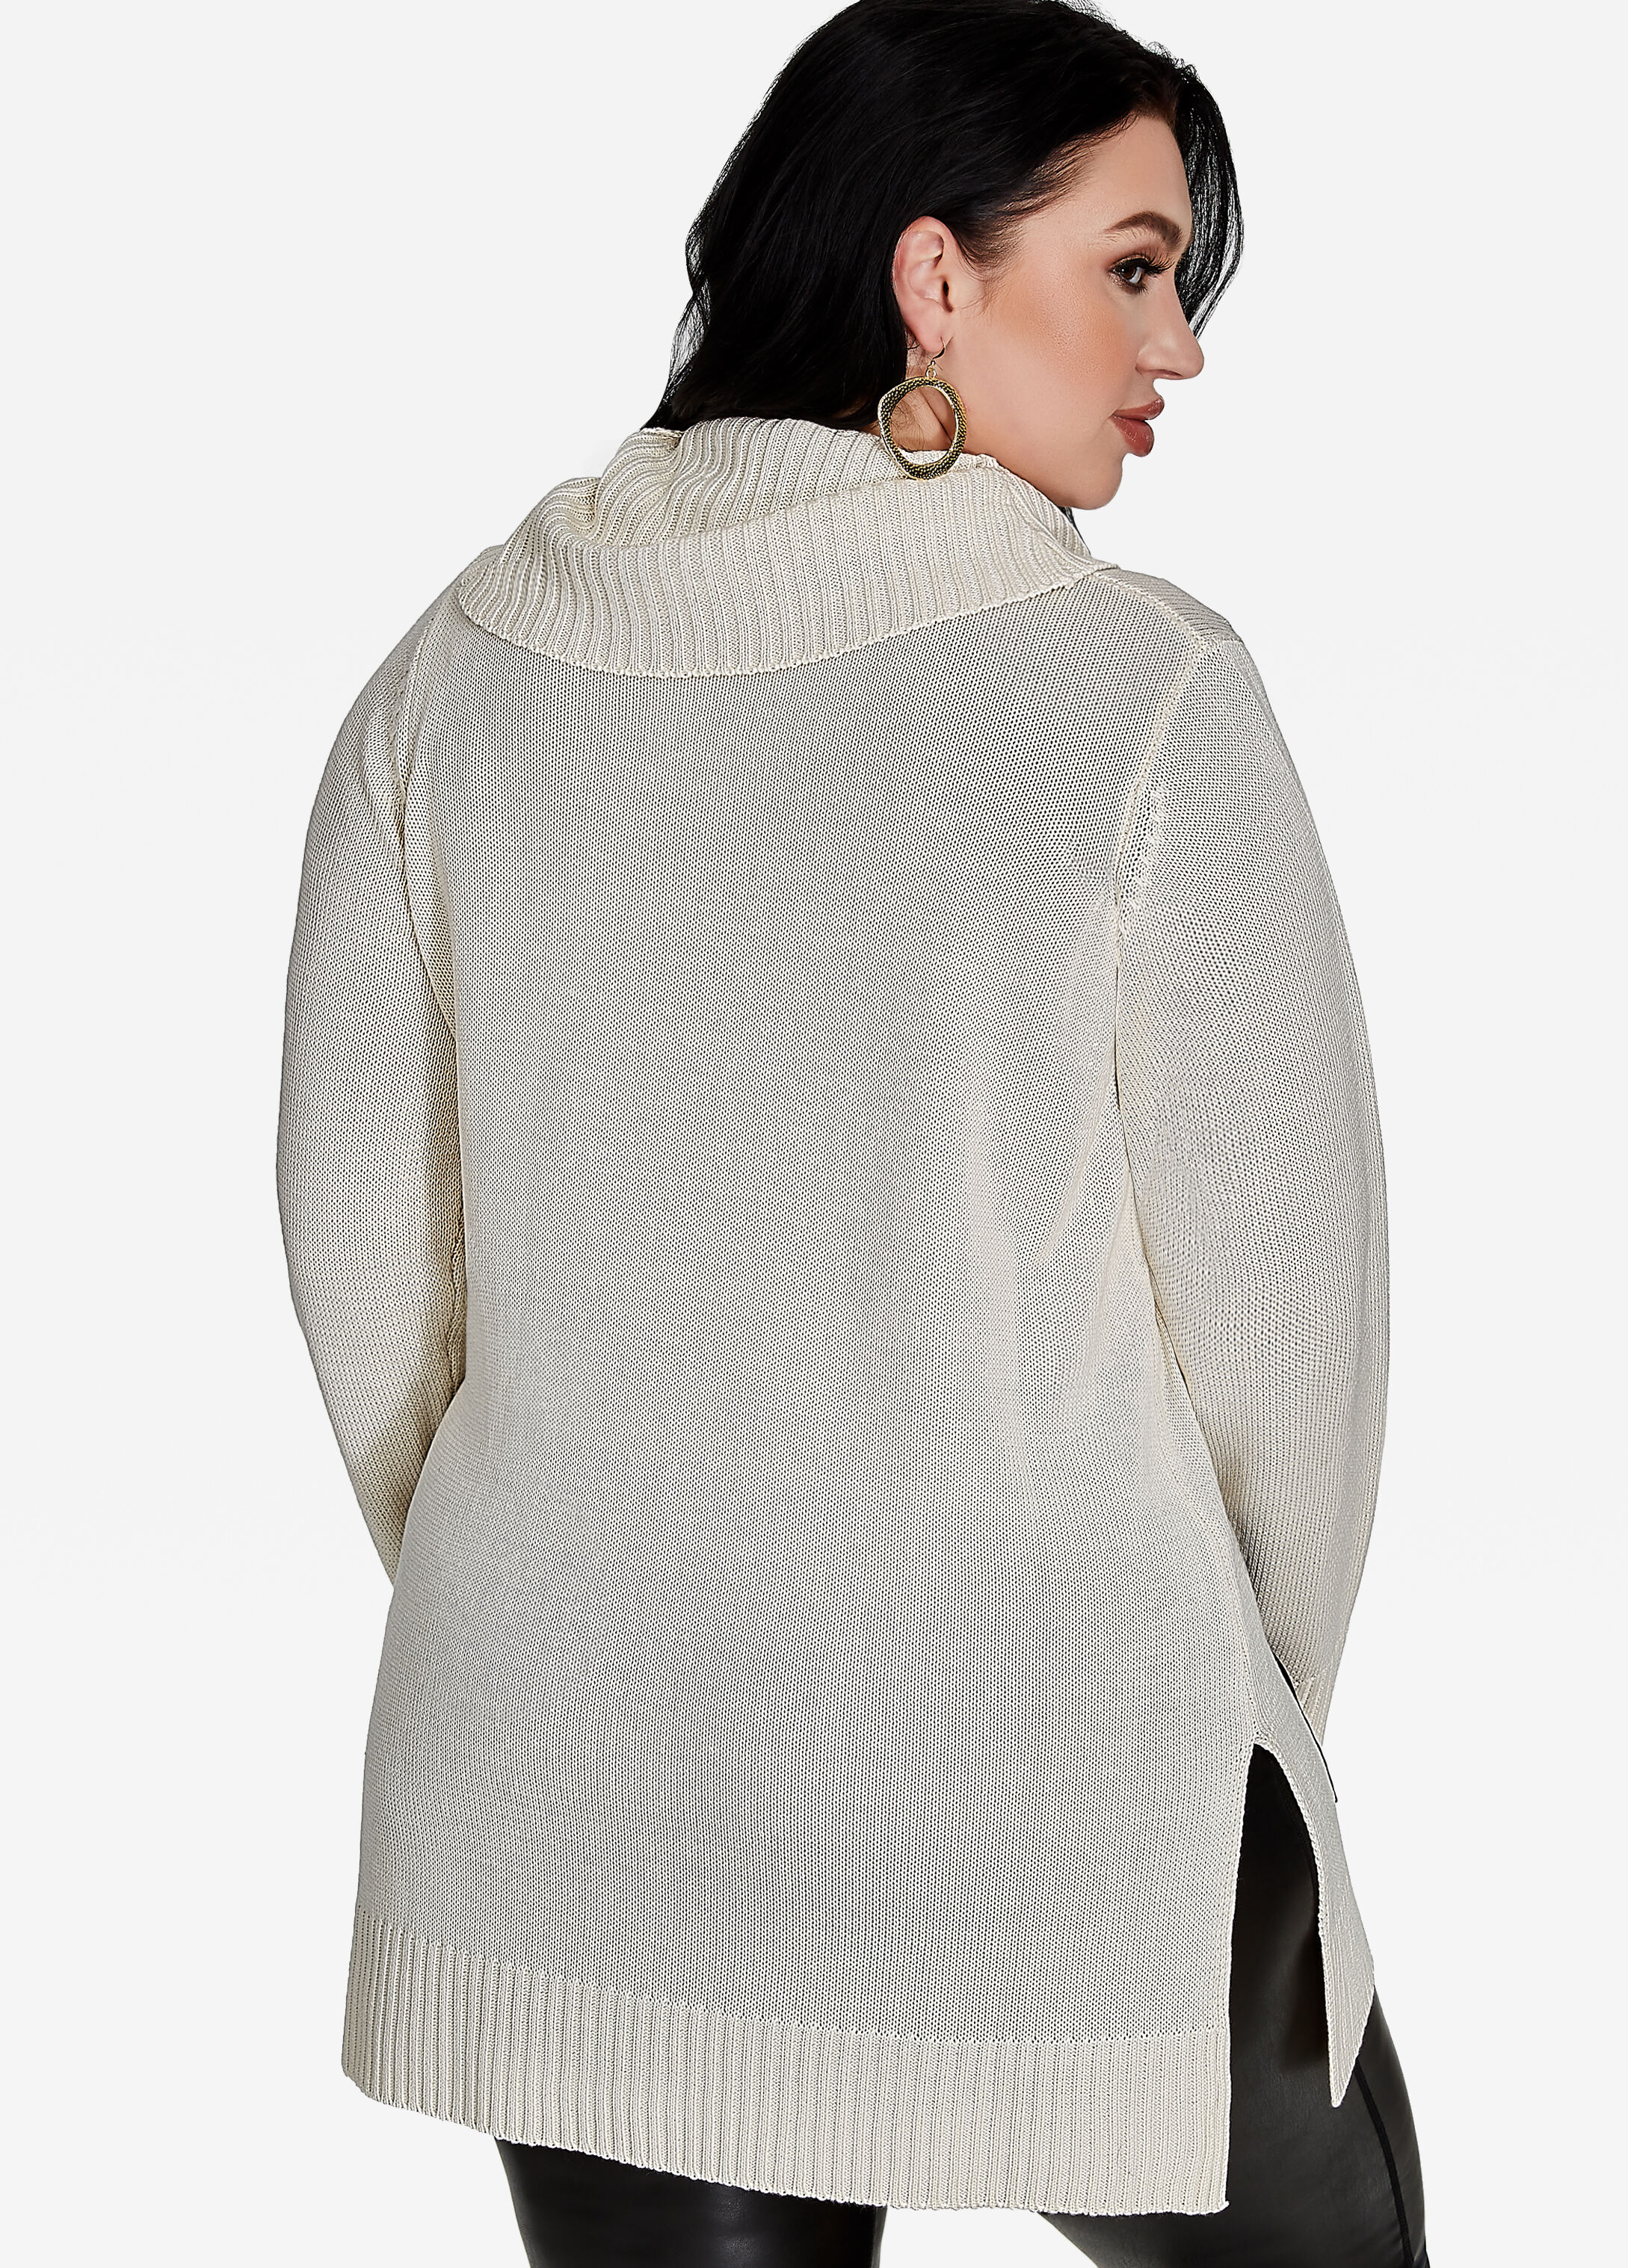 Buy Cowl Neck Sweater Egg Nog - Sweaters